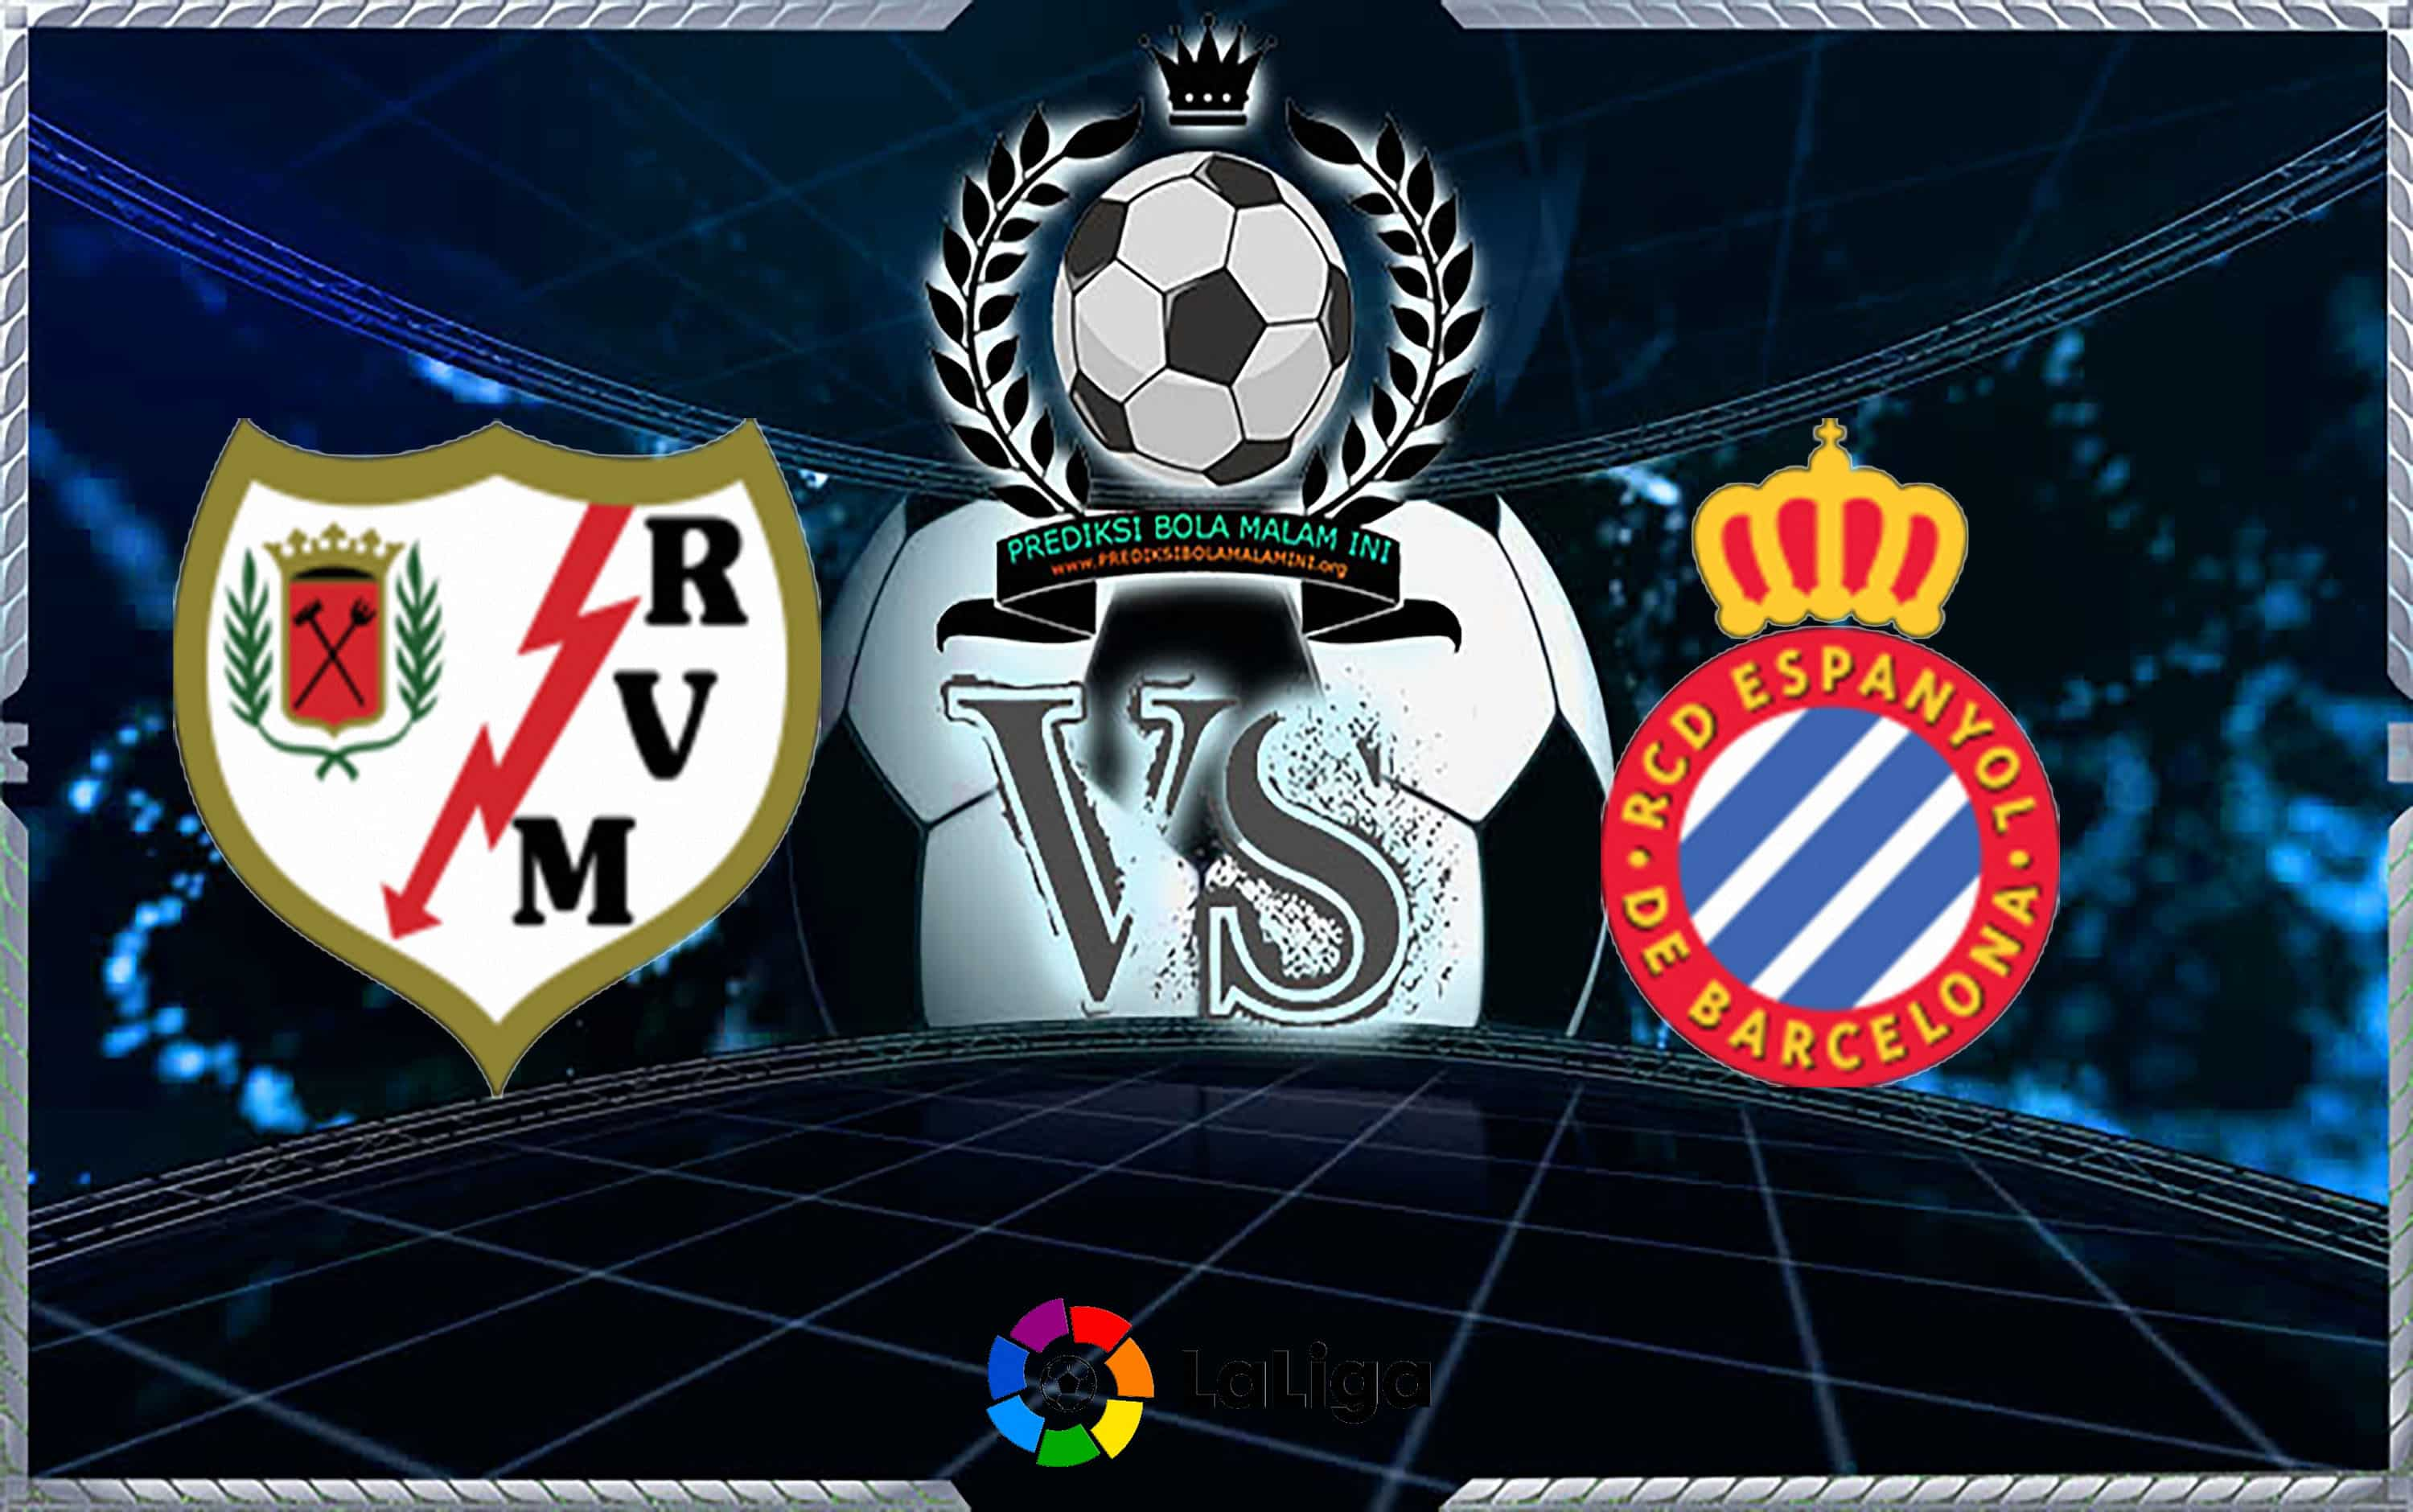 Prediksi Skor RAYO VALLECANO Vs ESPANYOL 29 september 2018